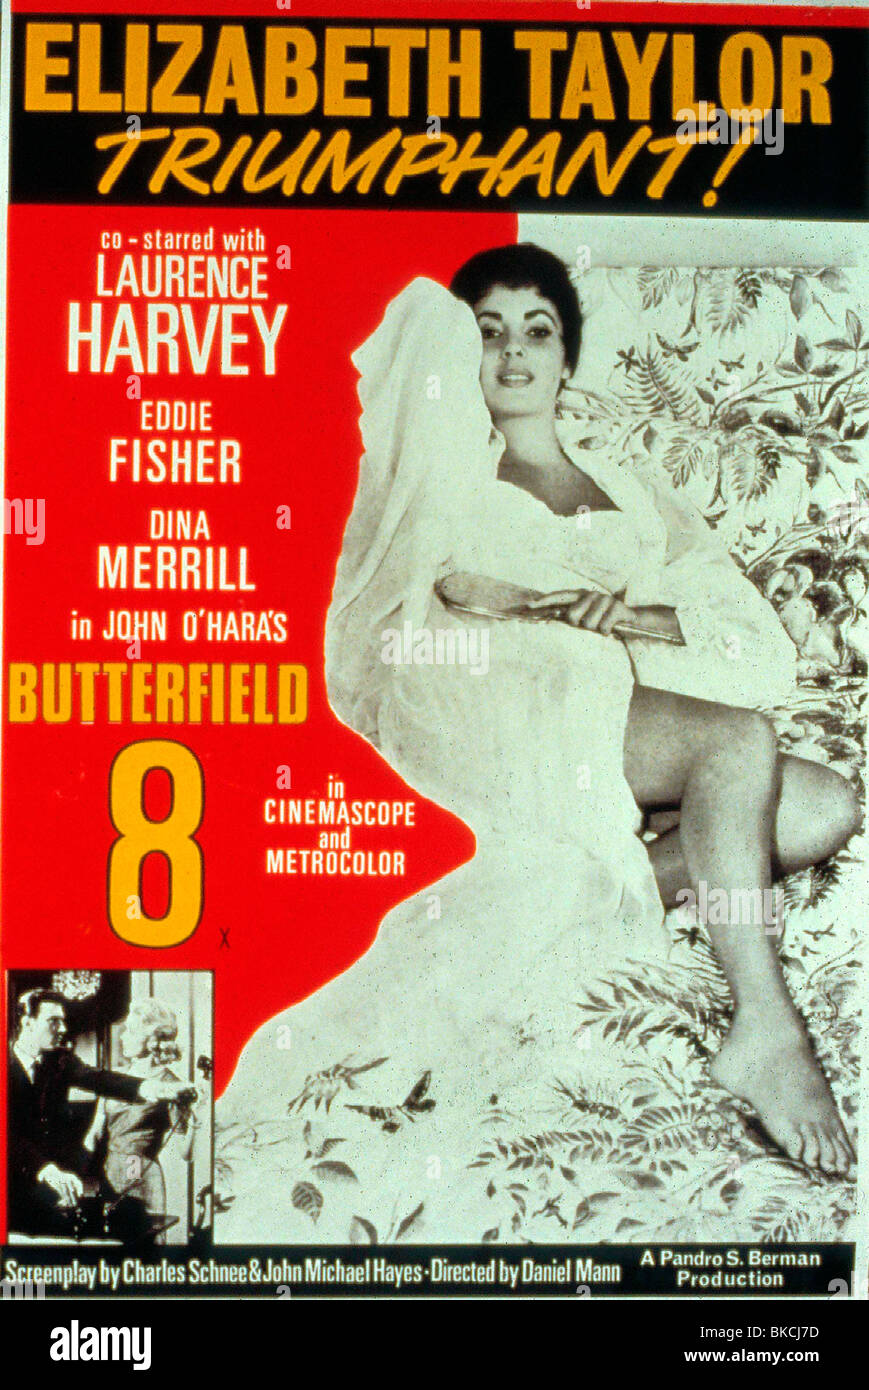 BUTTERFIELD EIGHT (1960) ELIZABETH TAYLOR POSTER BFET 039 - Stock Image